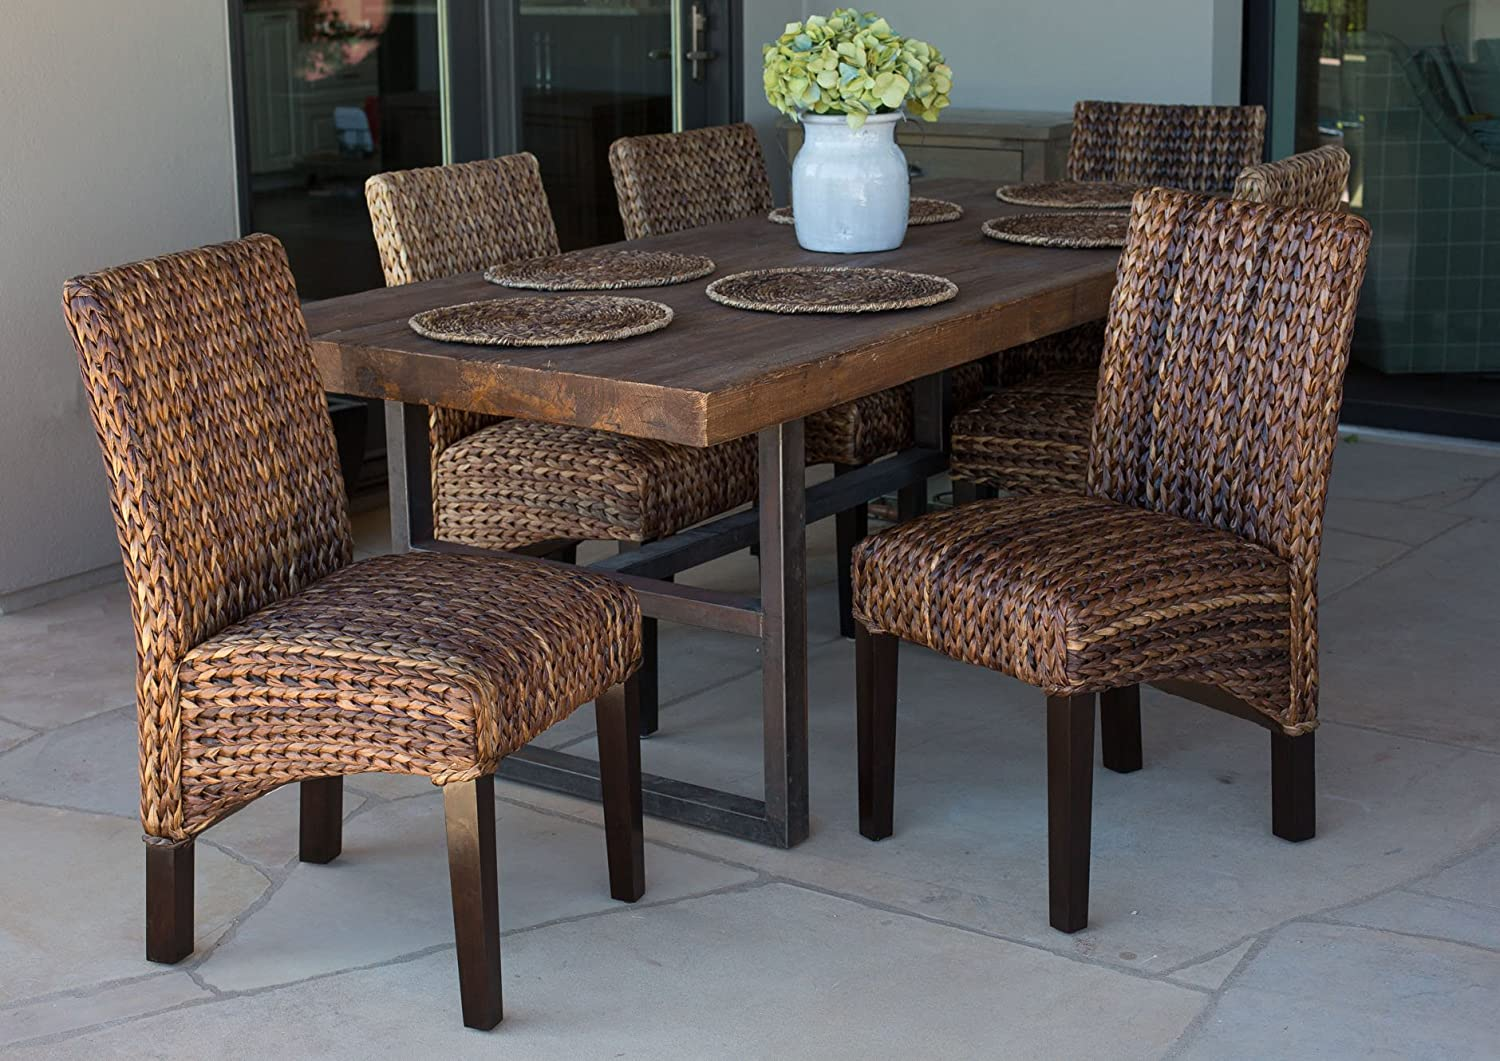 BIRDROCK HOME Abaca and Seagrass Side Chair Set | 2 pc | Delivered Fully Assembled